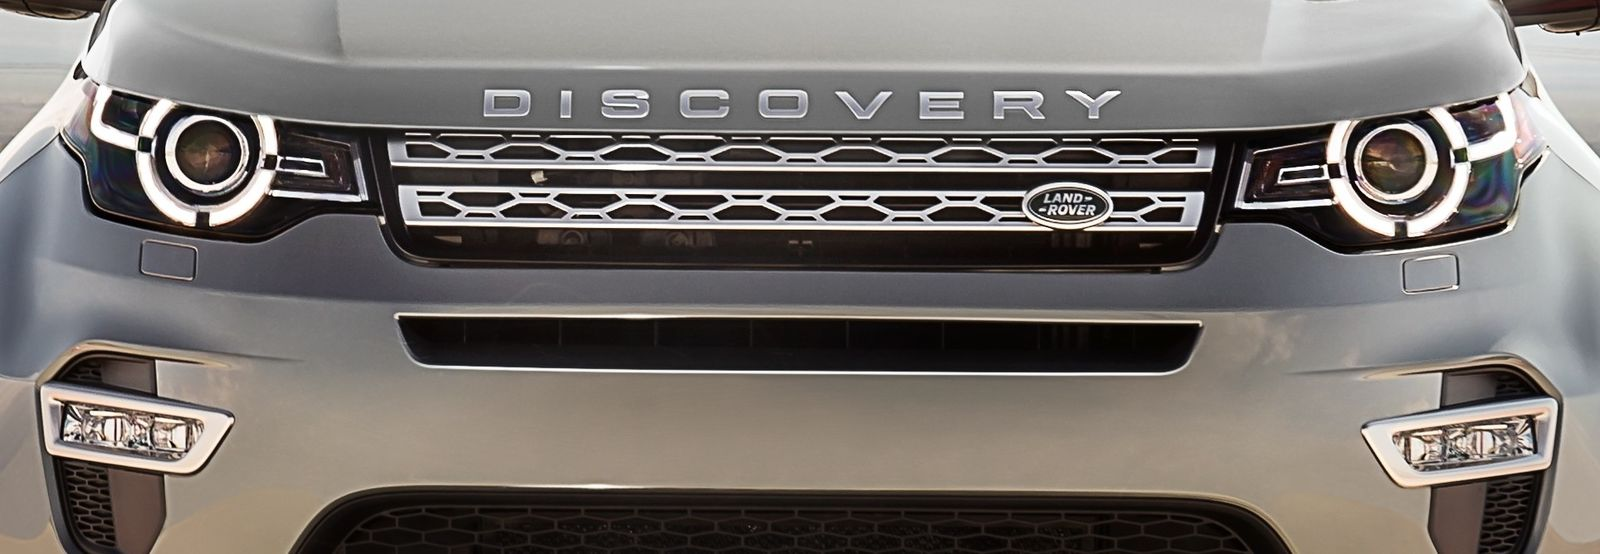 Land Rover Discovery Sport sizes and dimensions | carwow